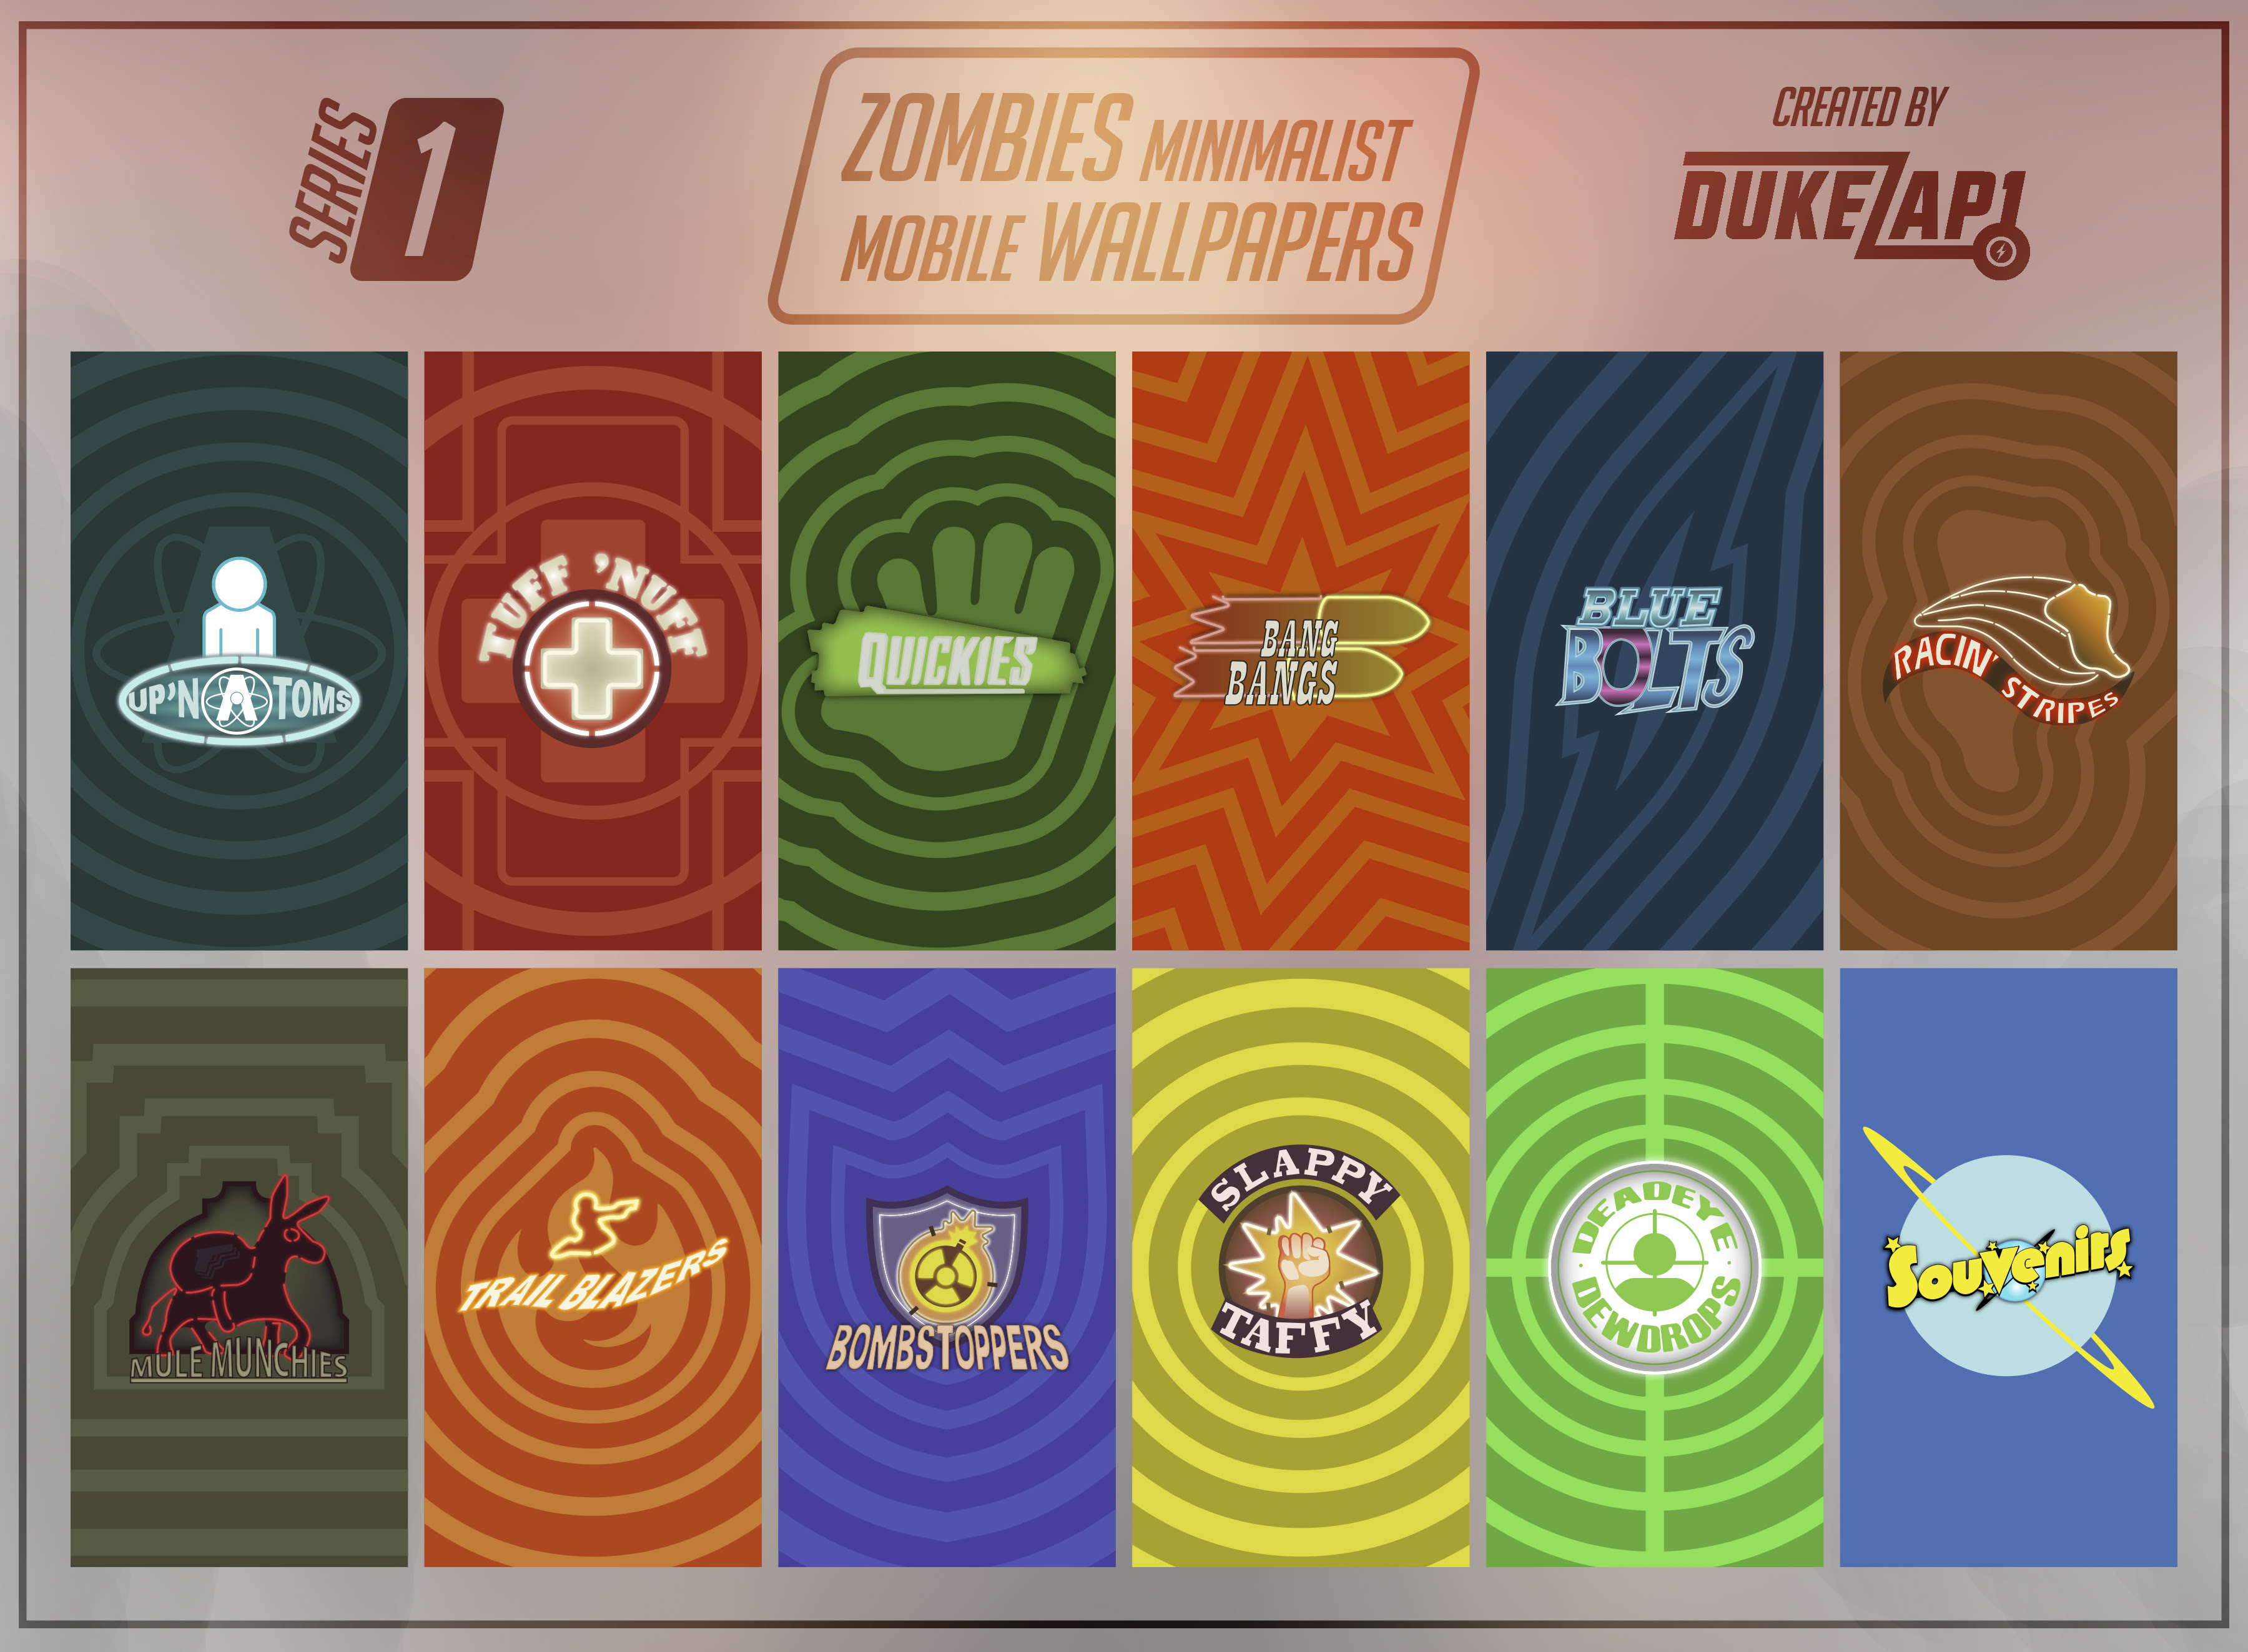 Zombies Mobile Wallpapers Chronicles Celebration 275 000